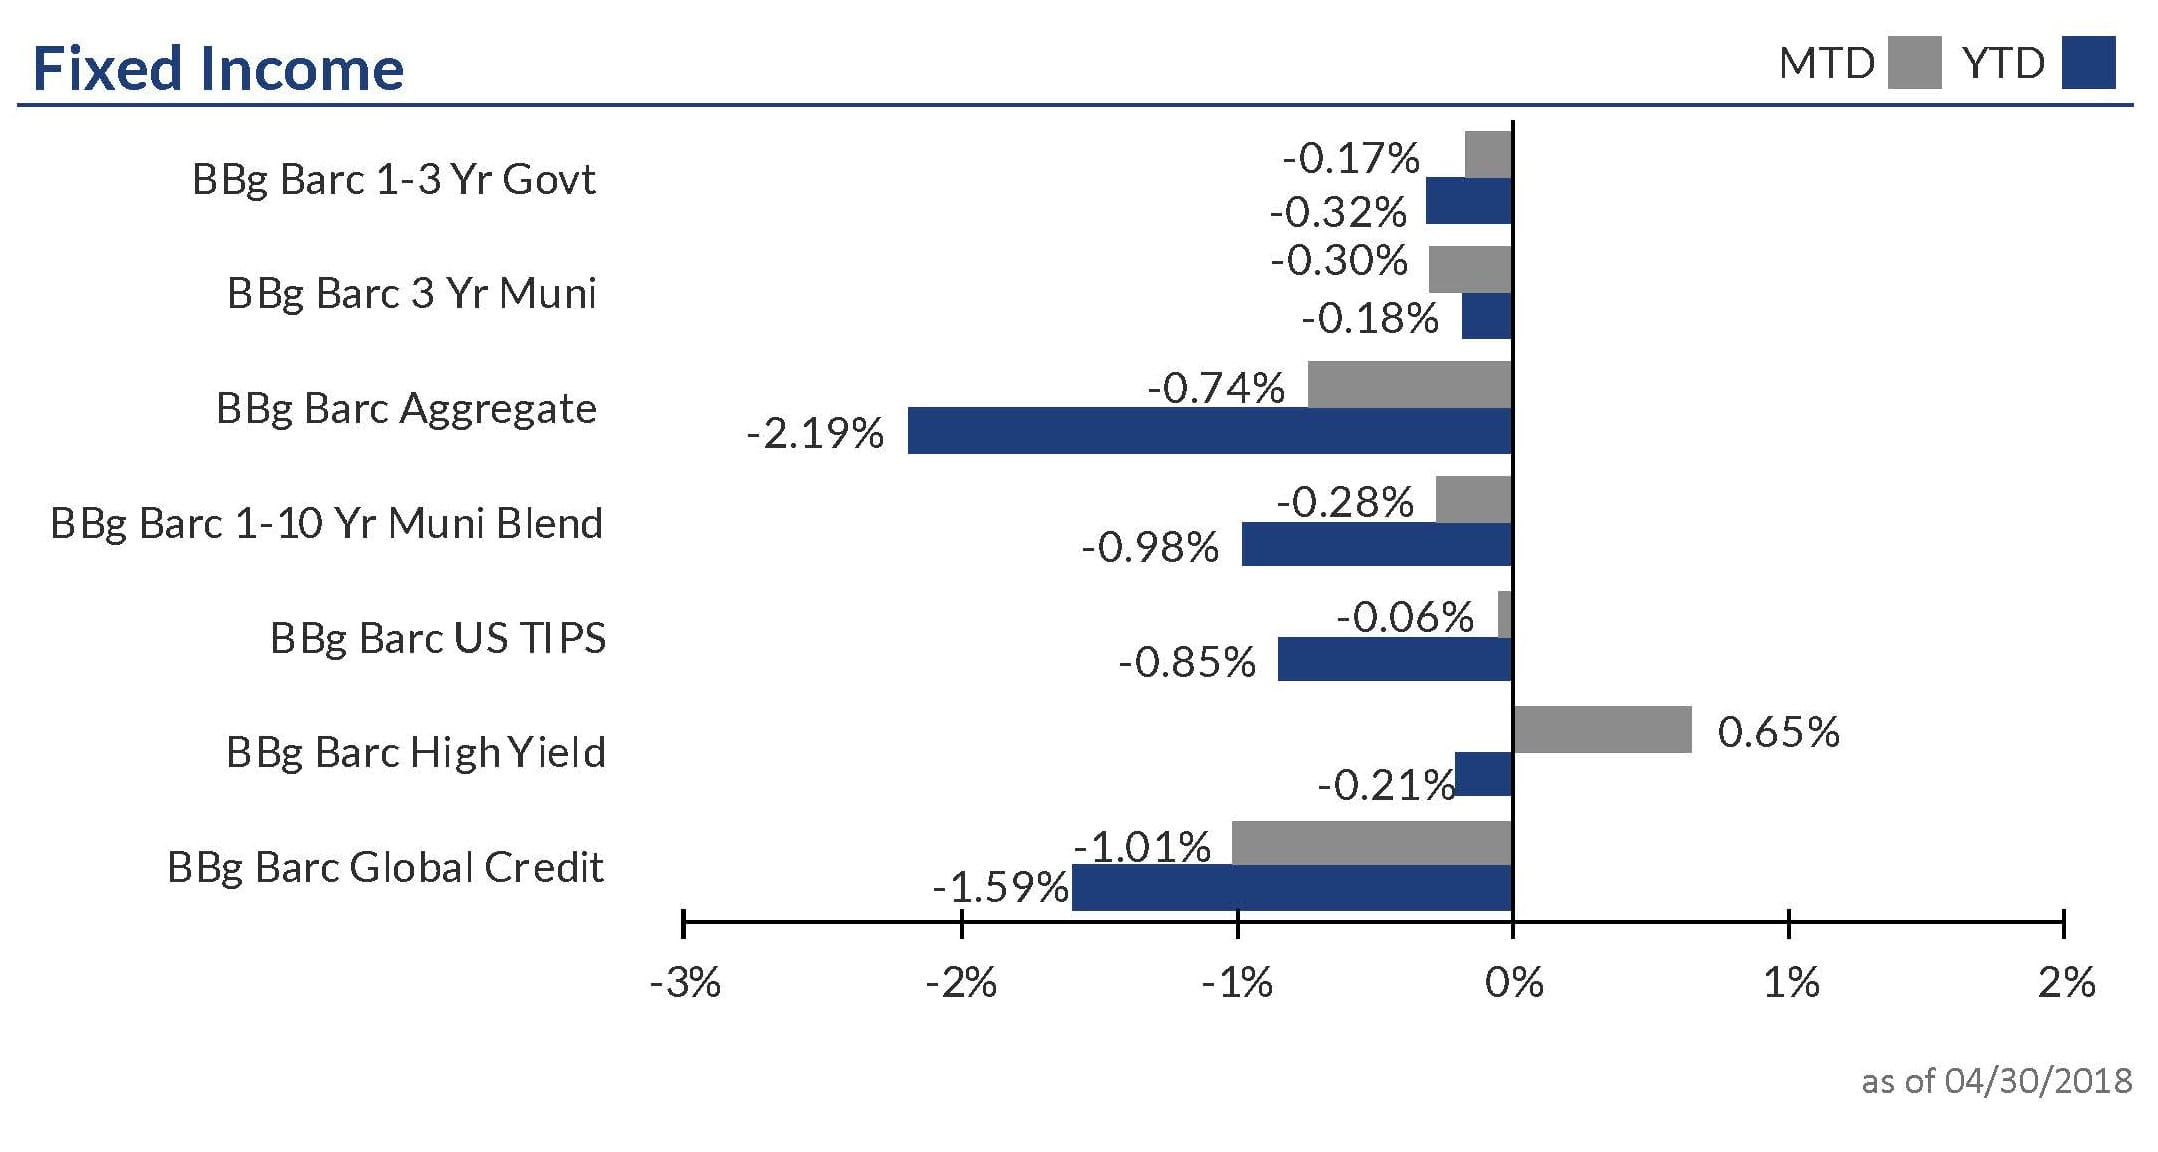 Fixed income performance chart